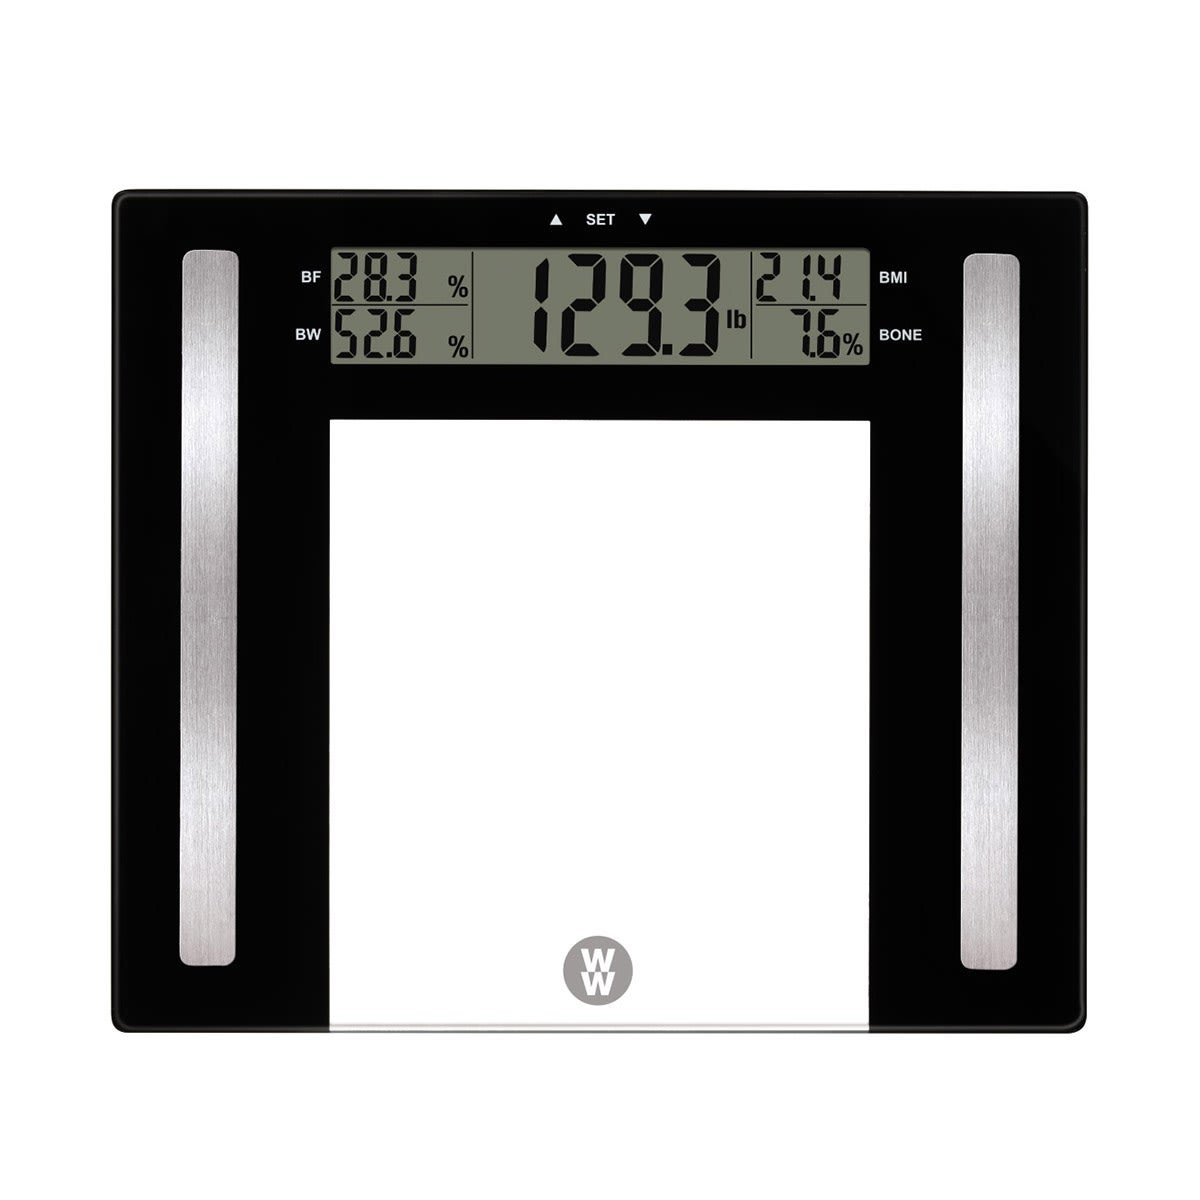 WW Body Analysis Blacks Scale with LCD screen, Calculates weight, body fat, body water/hydration, body mass index (BMI), and bone density, 400 pound capacity, includes 2 x CR2032 lithium batteries, push button to function,